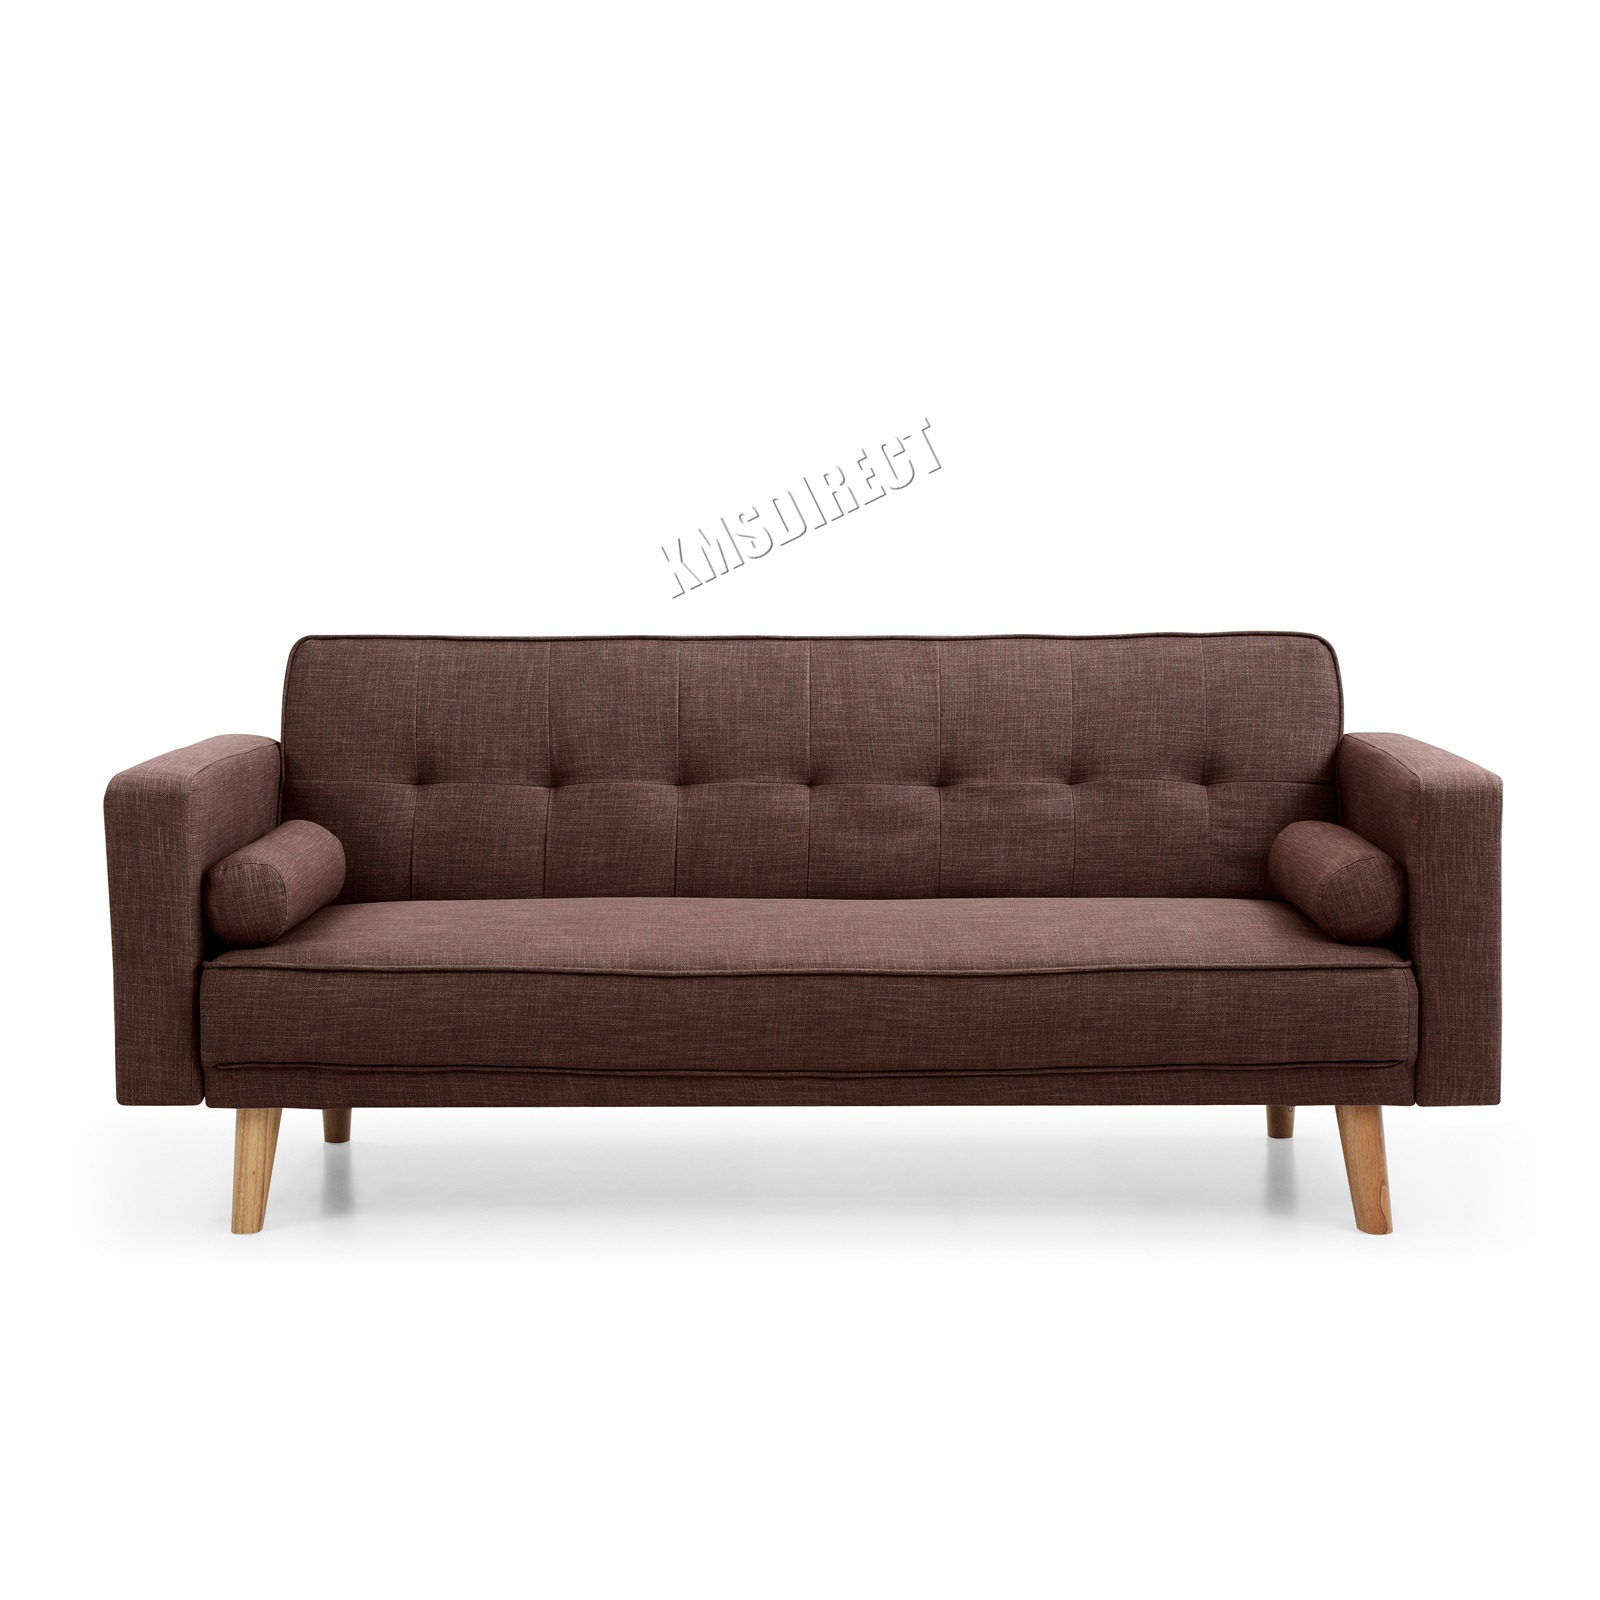 WestWood-Fabric-Sofa-Bed-3-Seater-Couch-Luxury-Modern-Home-Furniture-FSB04-New thumbnail 23